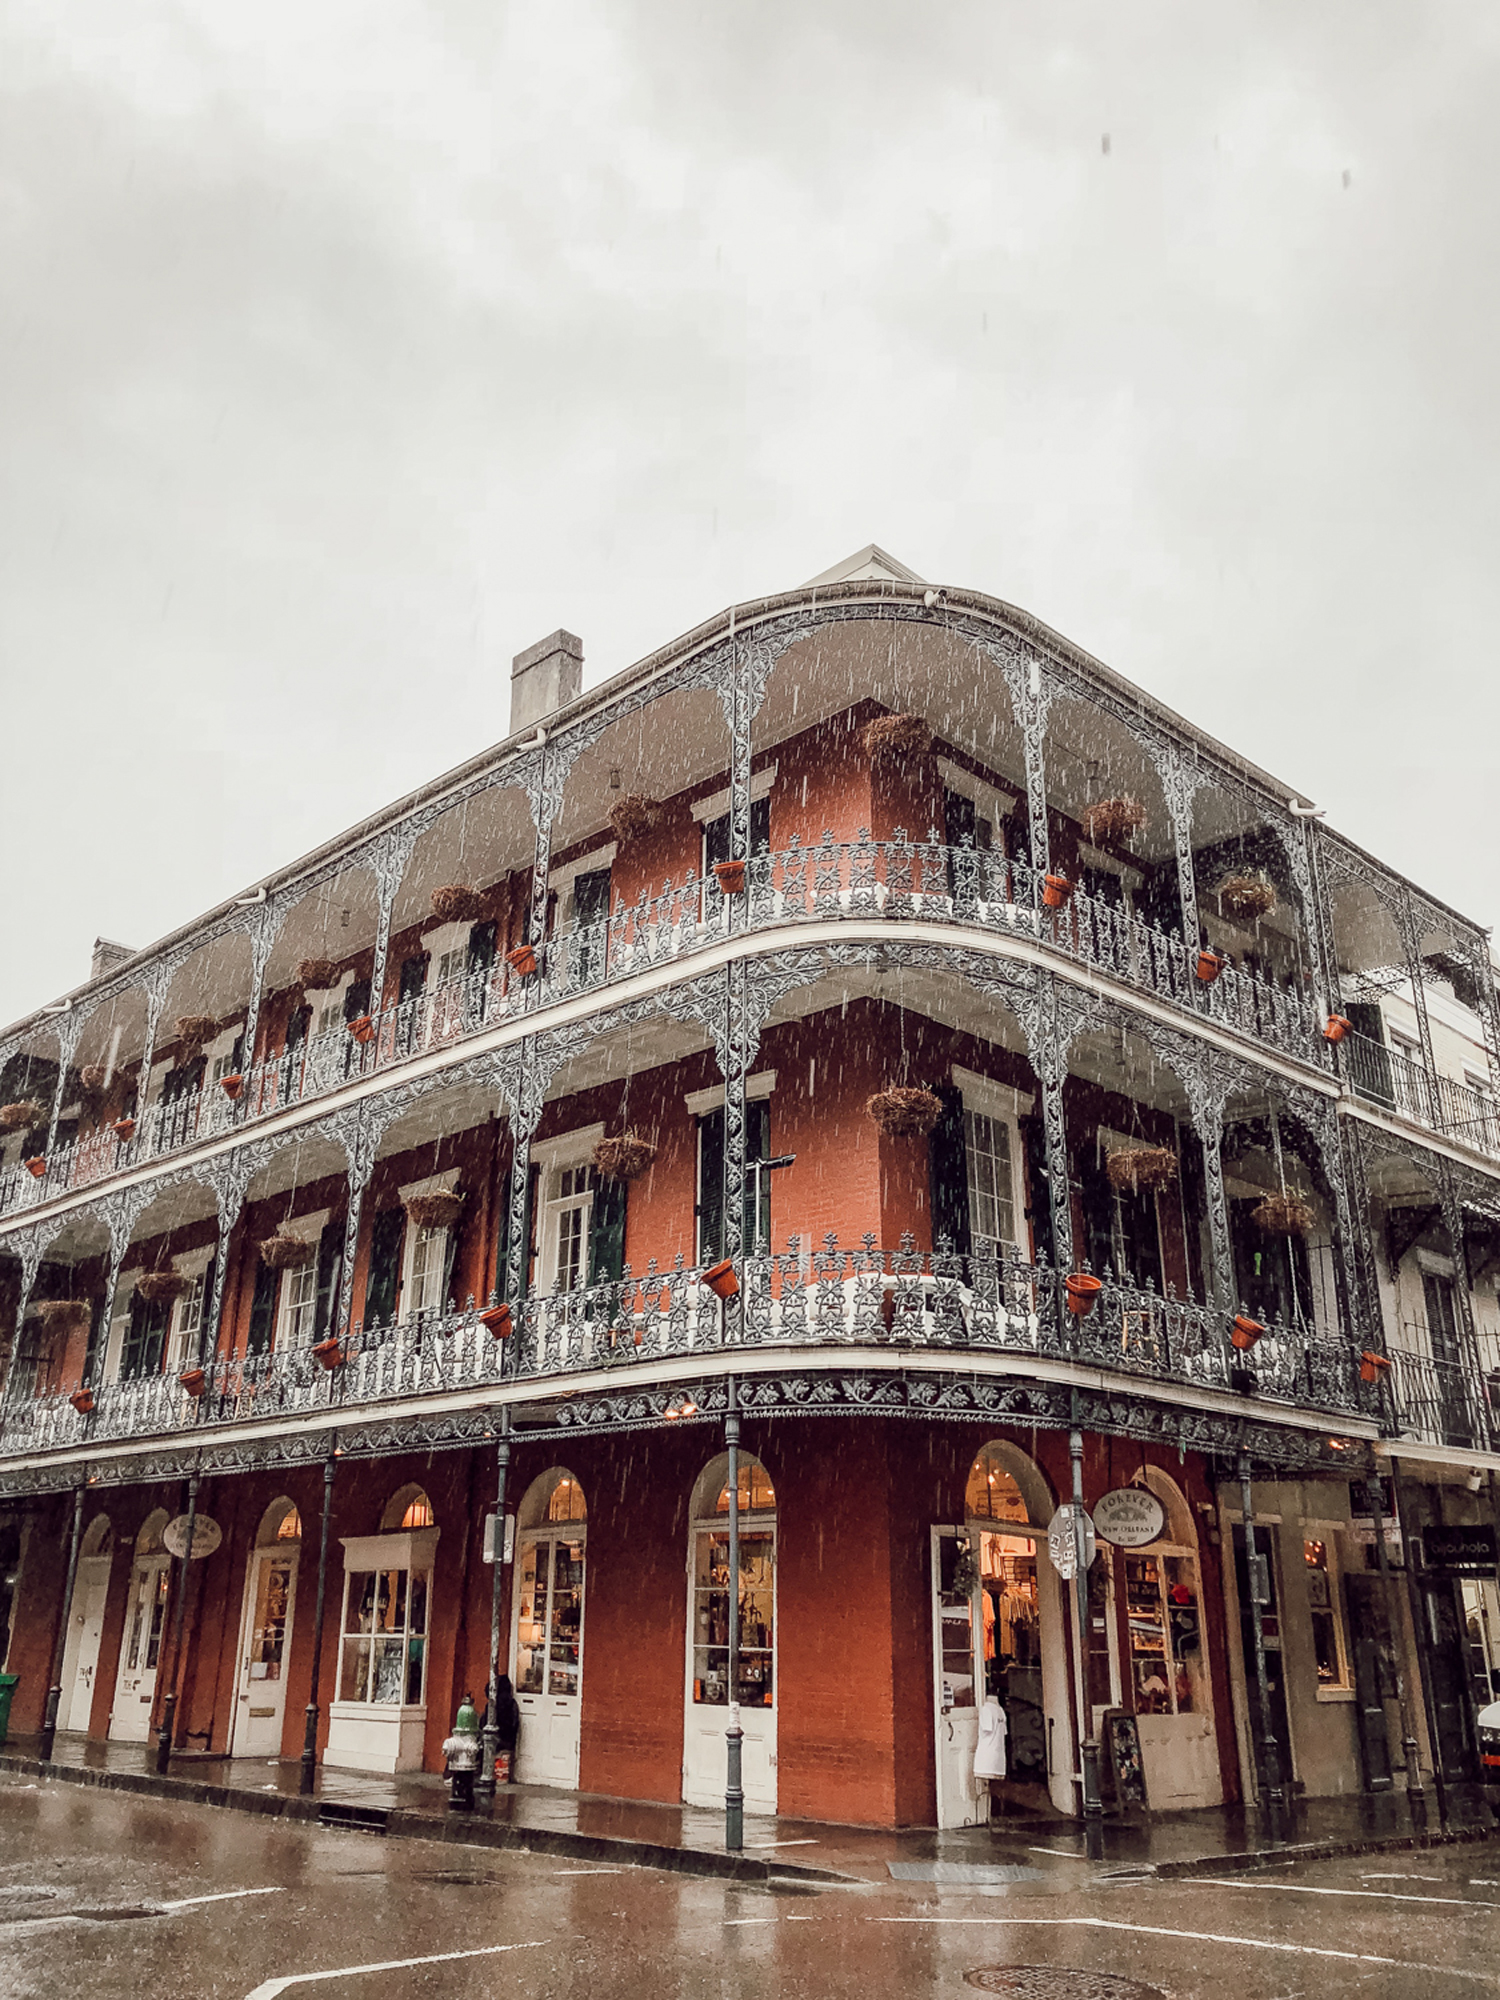 rainy view of New Orleans building